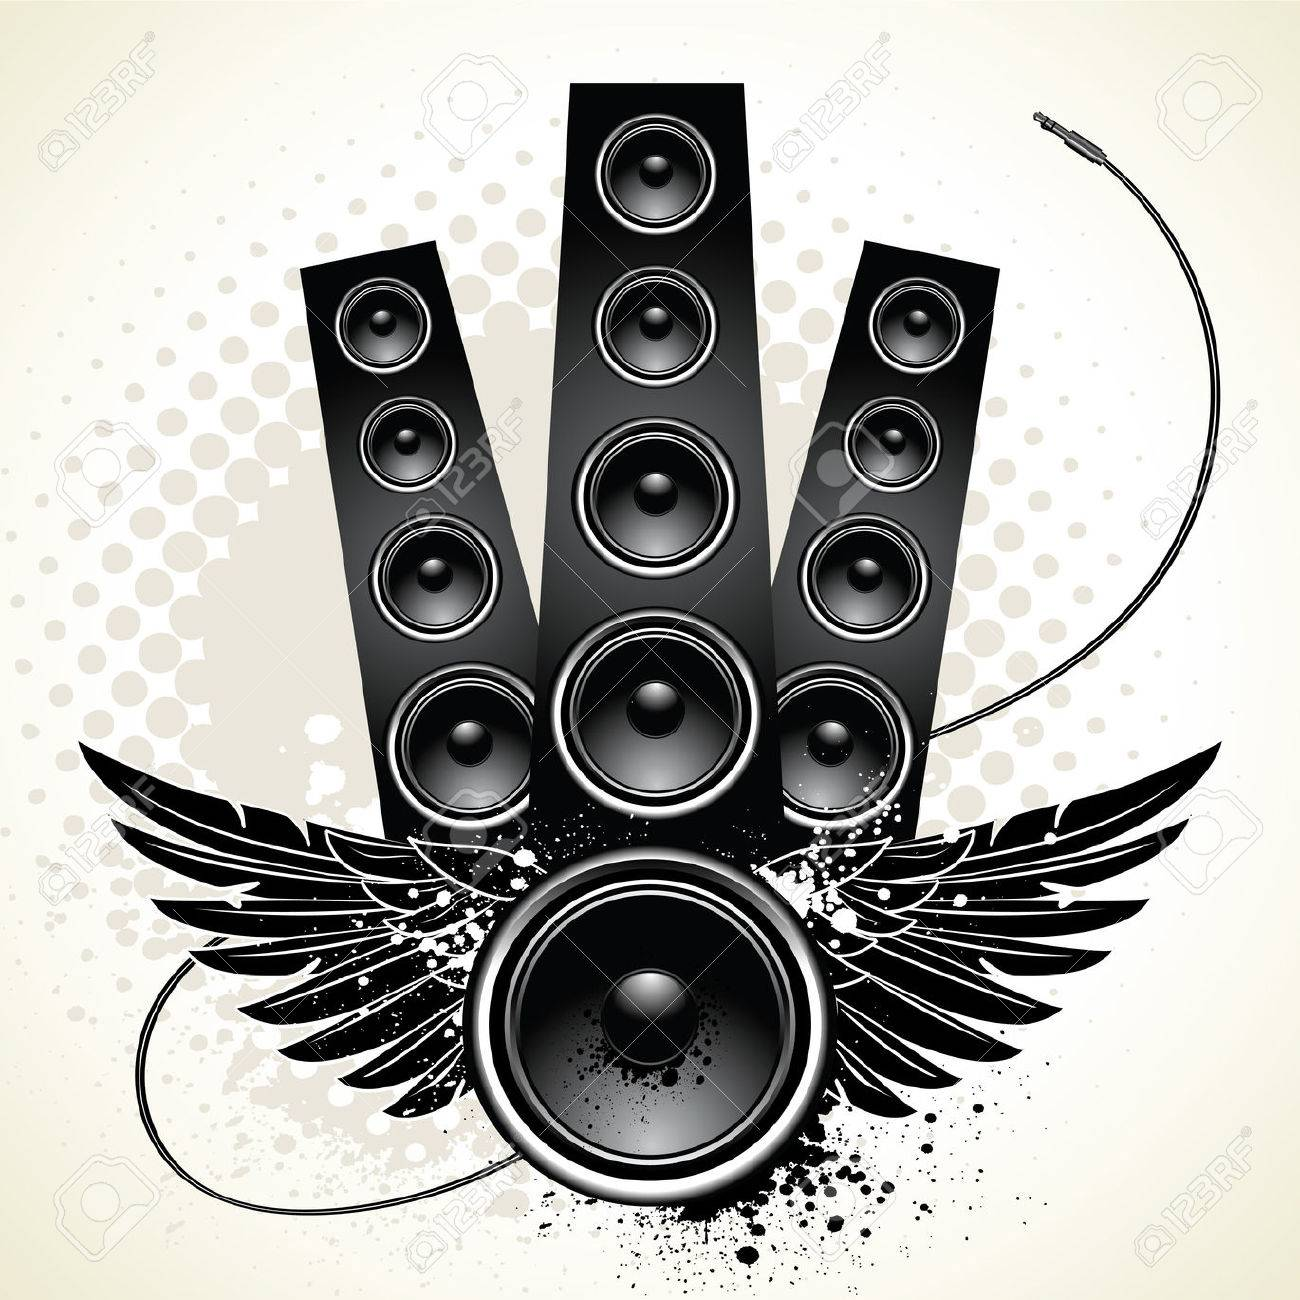 dj speakers clipart. techno drop the bass: speakers with wings and wire on grunge background dj clipart